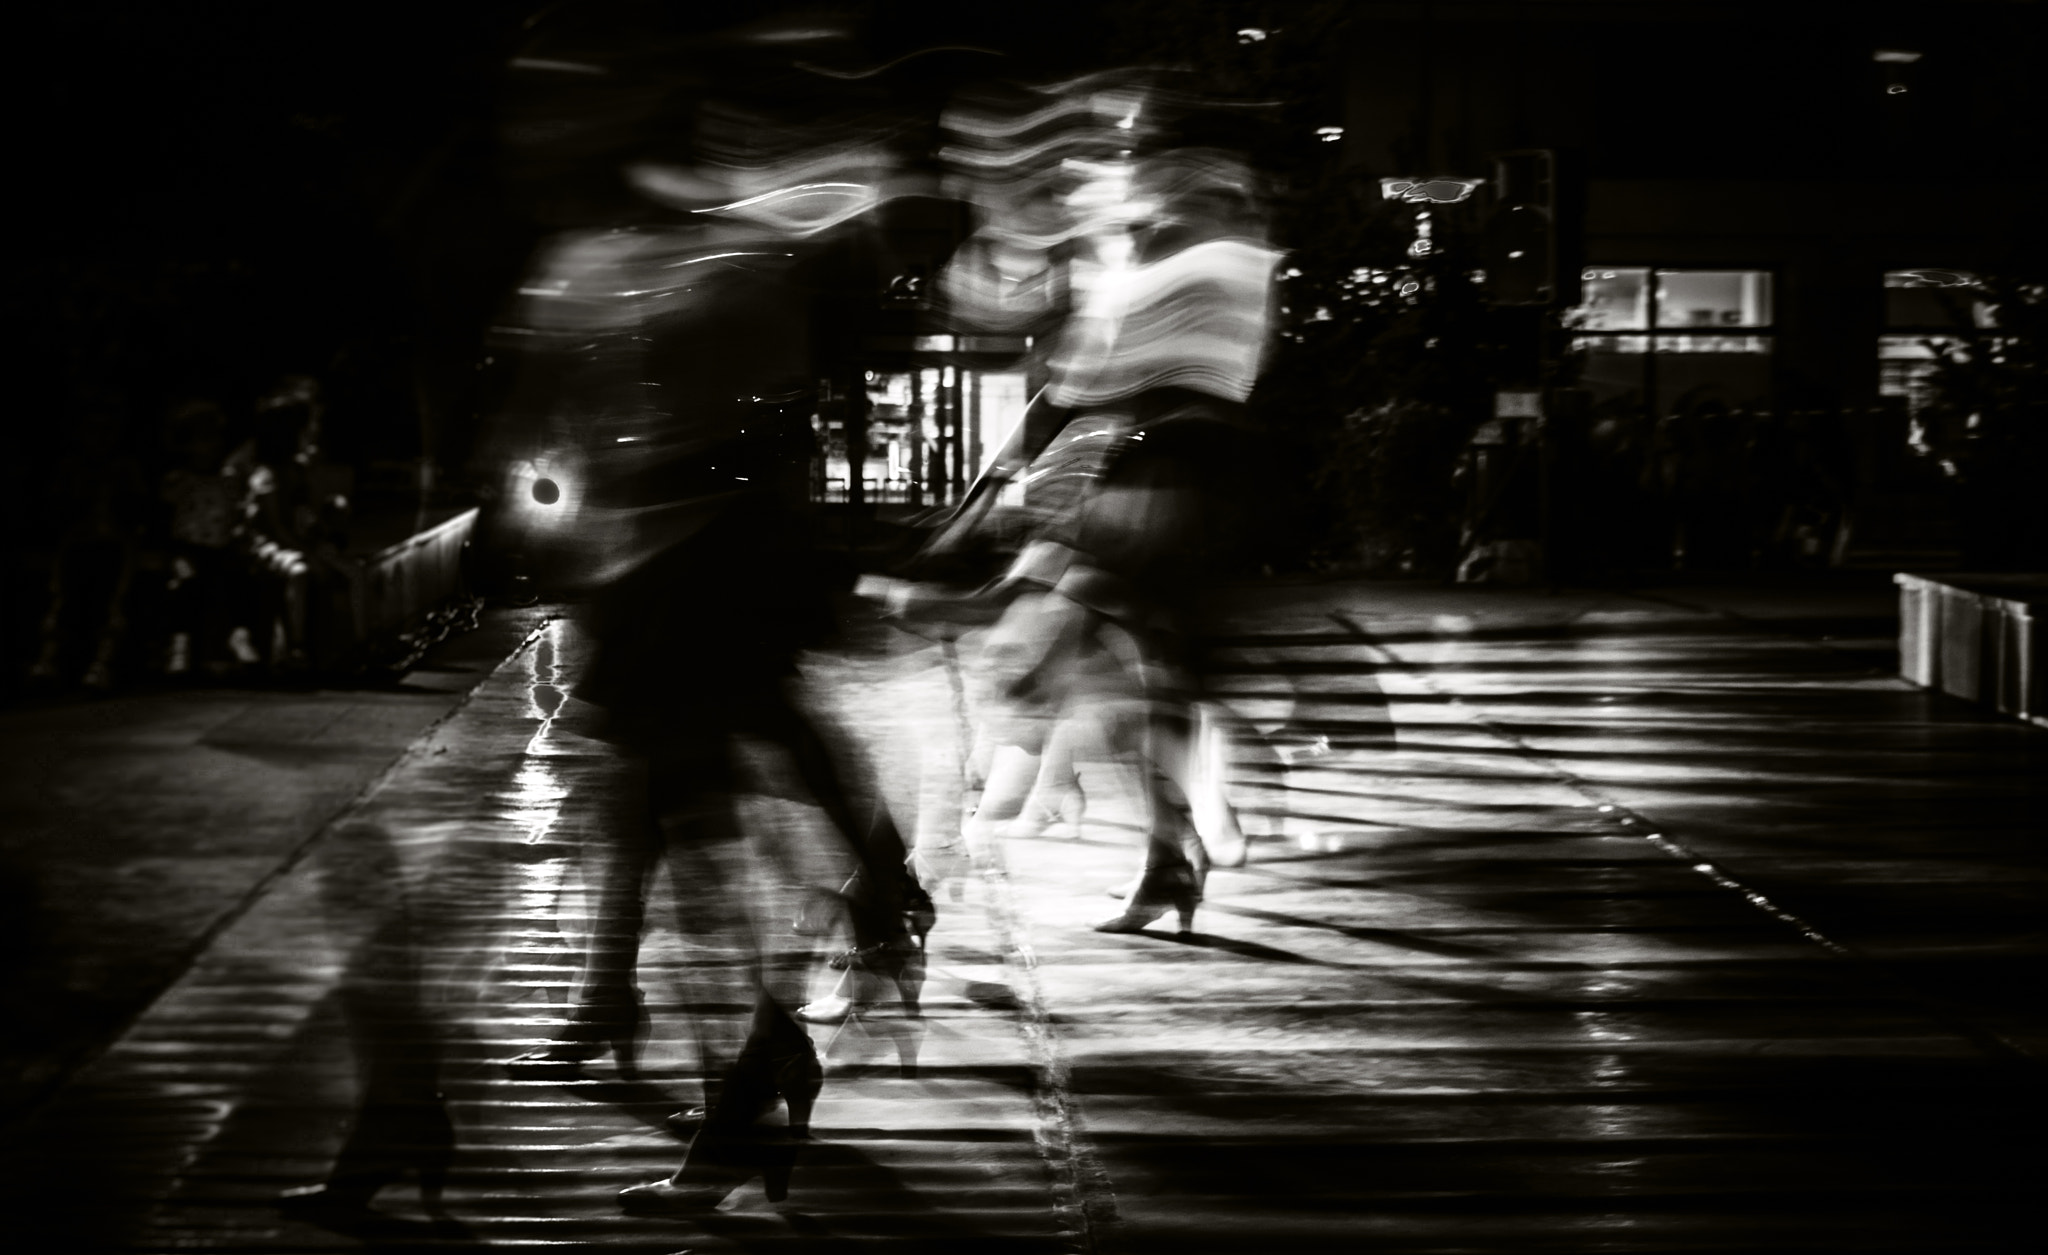 Photograph Movements  by Rucsandra Calin on 500px